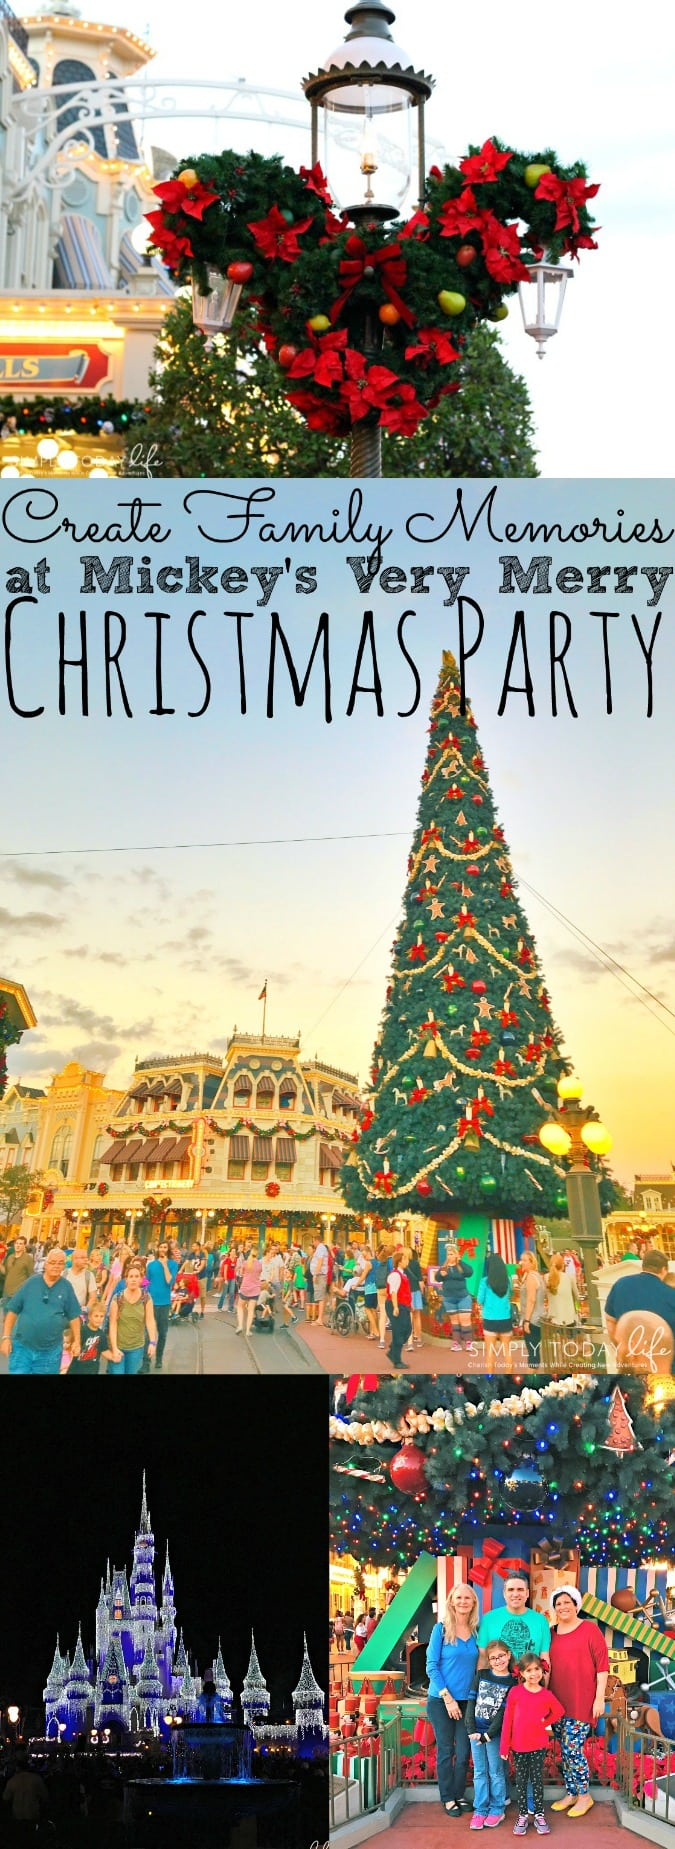 Create Family Memories at Mickey's Very Merry Christmas Party #VerryMerry #DisneyHolidays (ad) - simplytodaylife.com